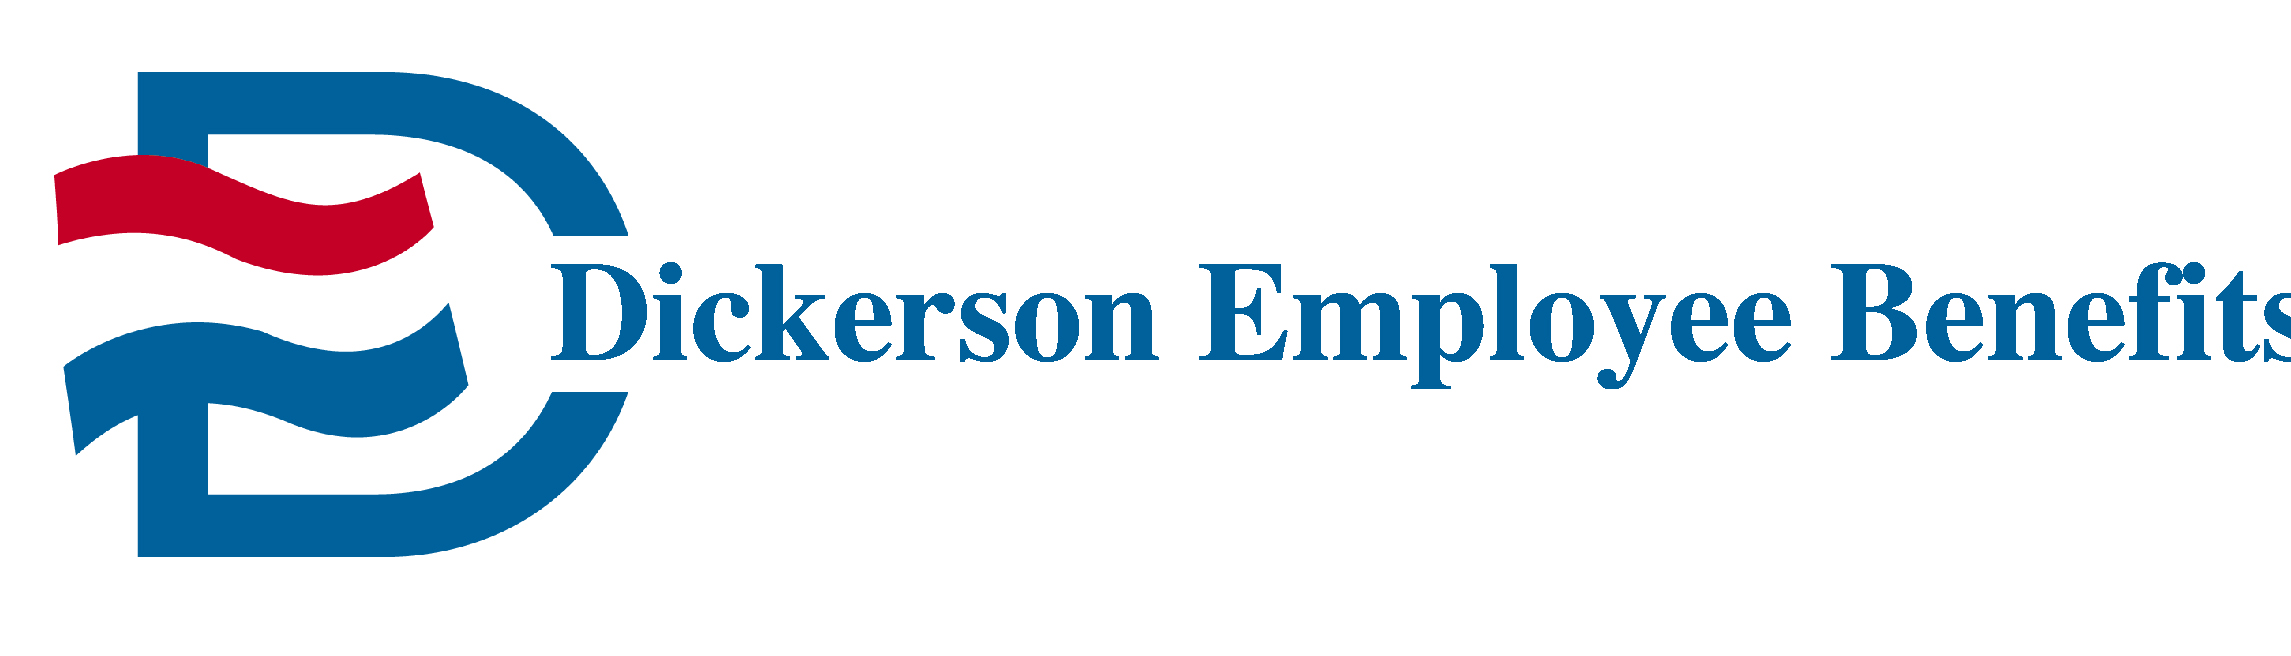 Dickerson Employee Benefits company